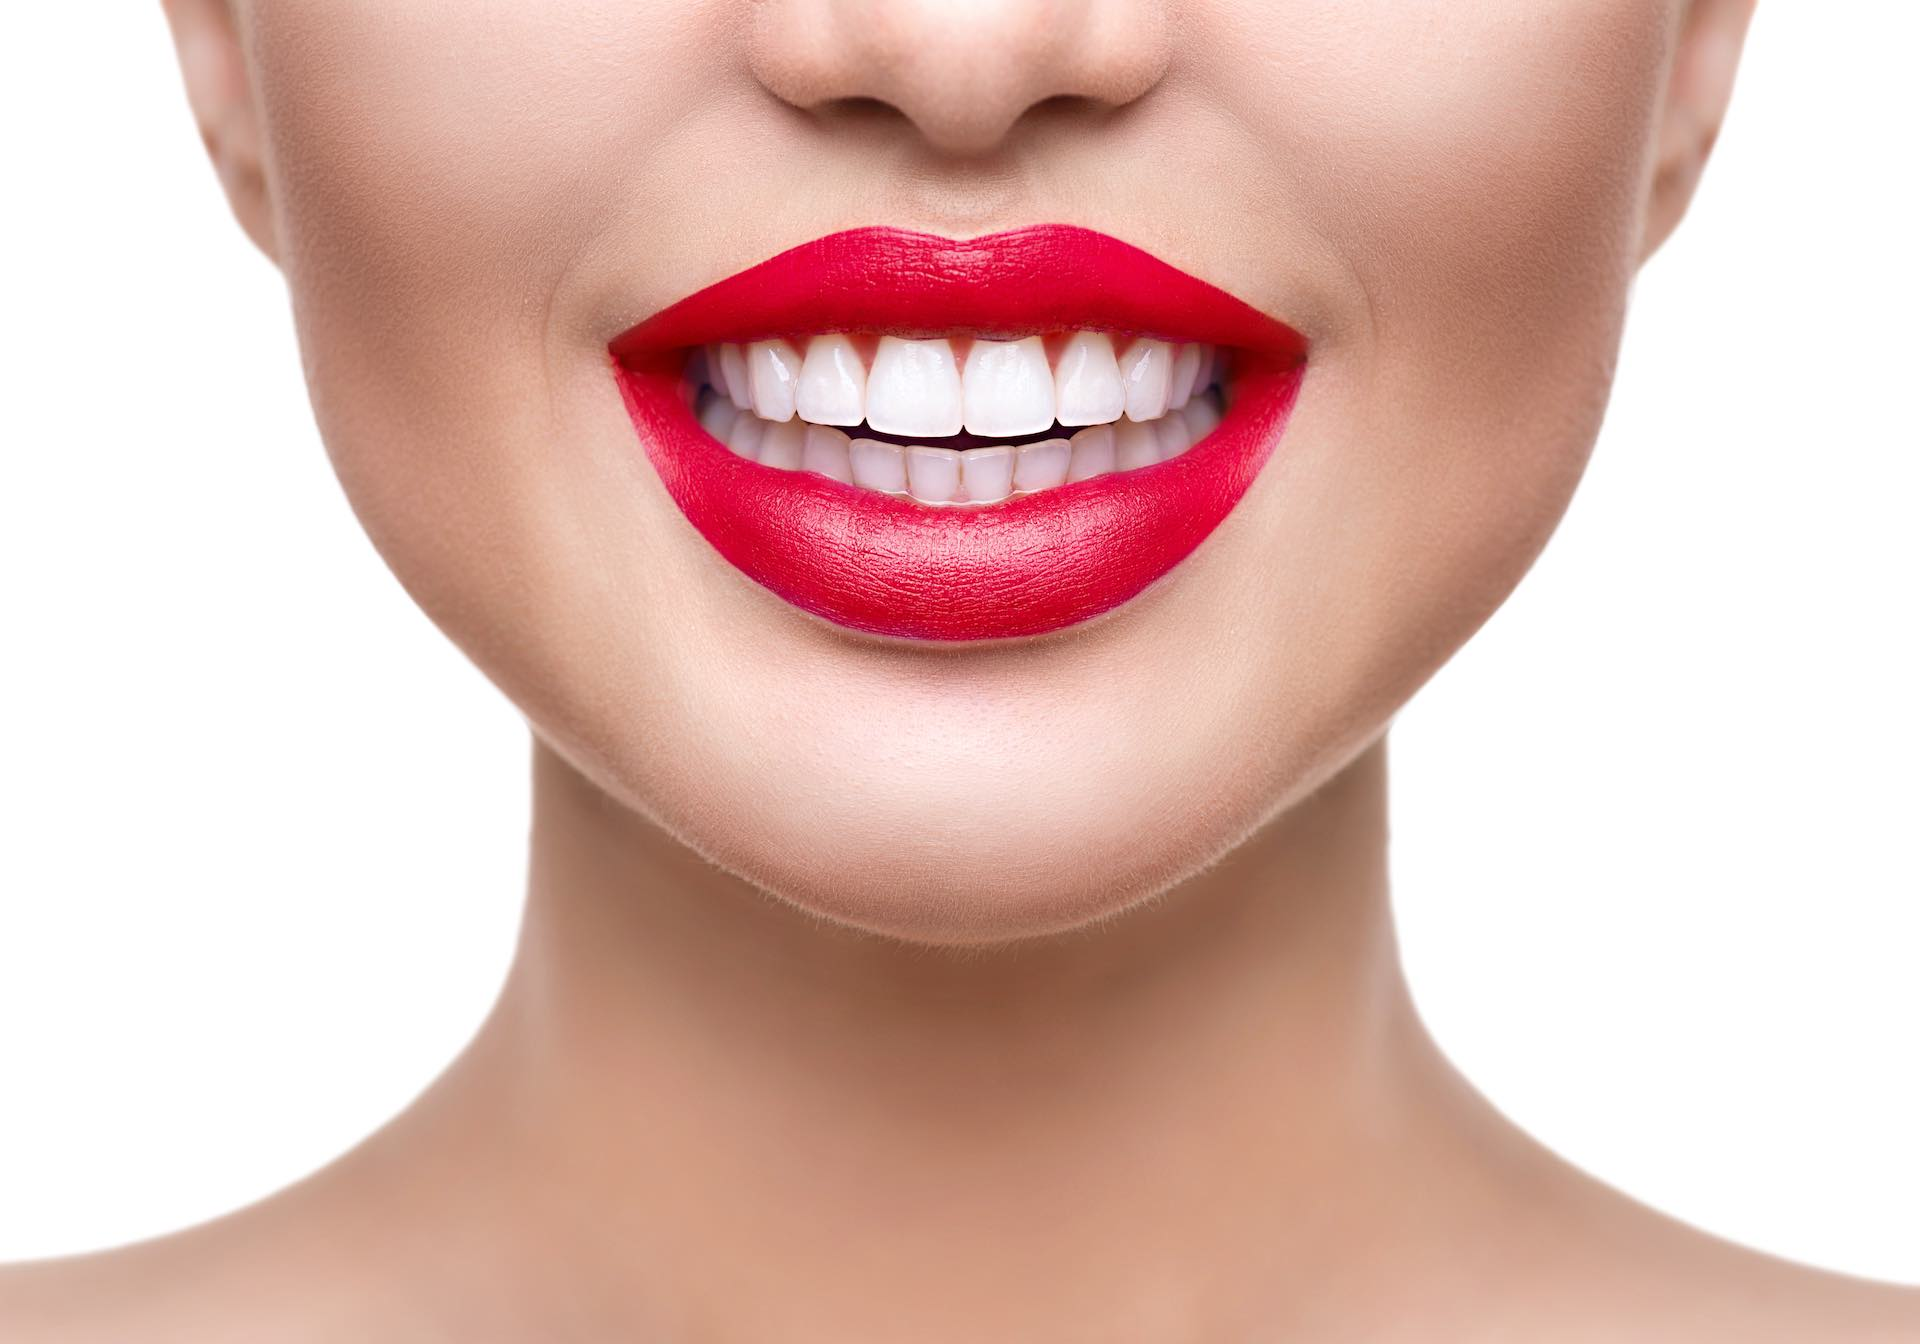 Smile - Barbara Pointon Facial Aesthetics